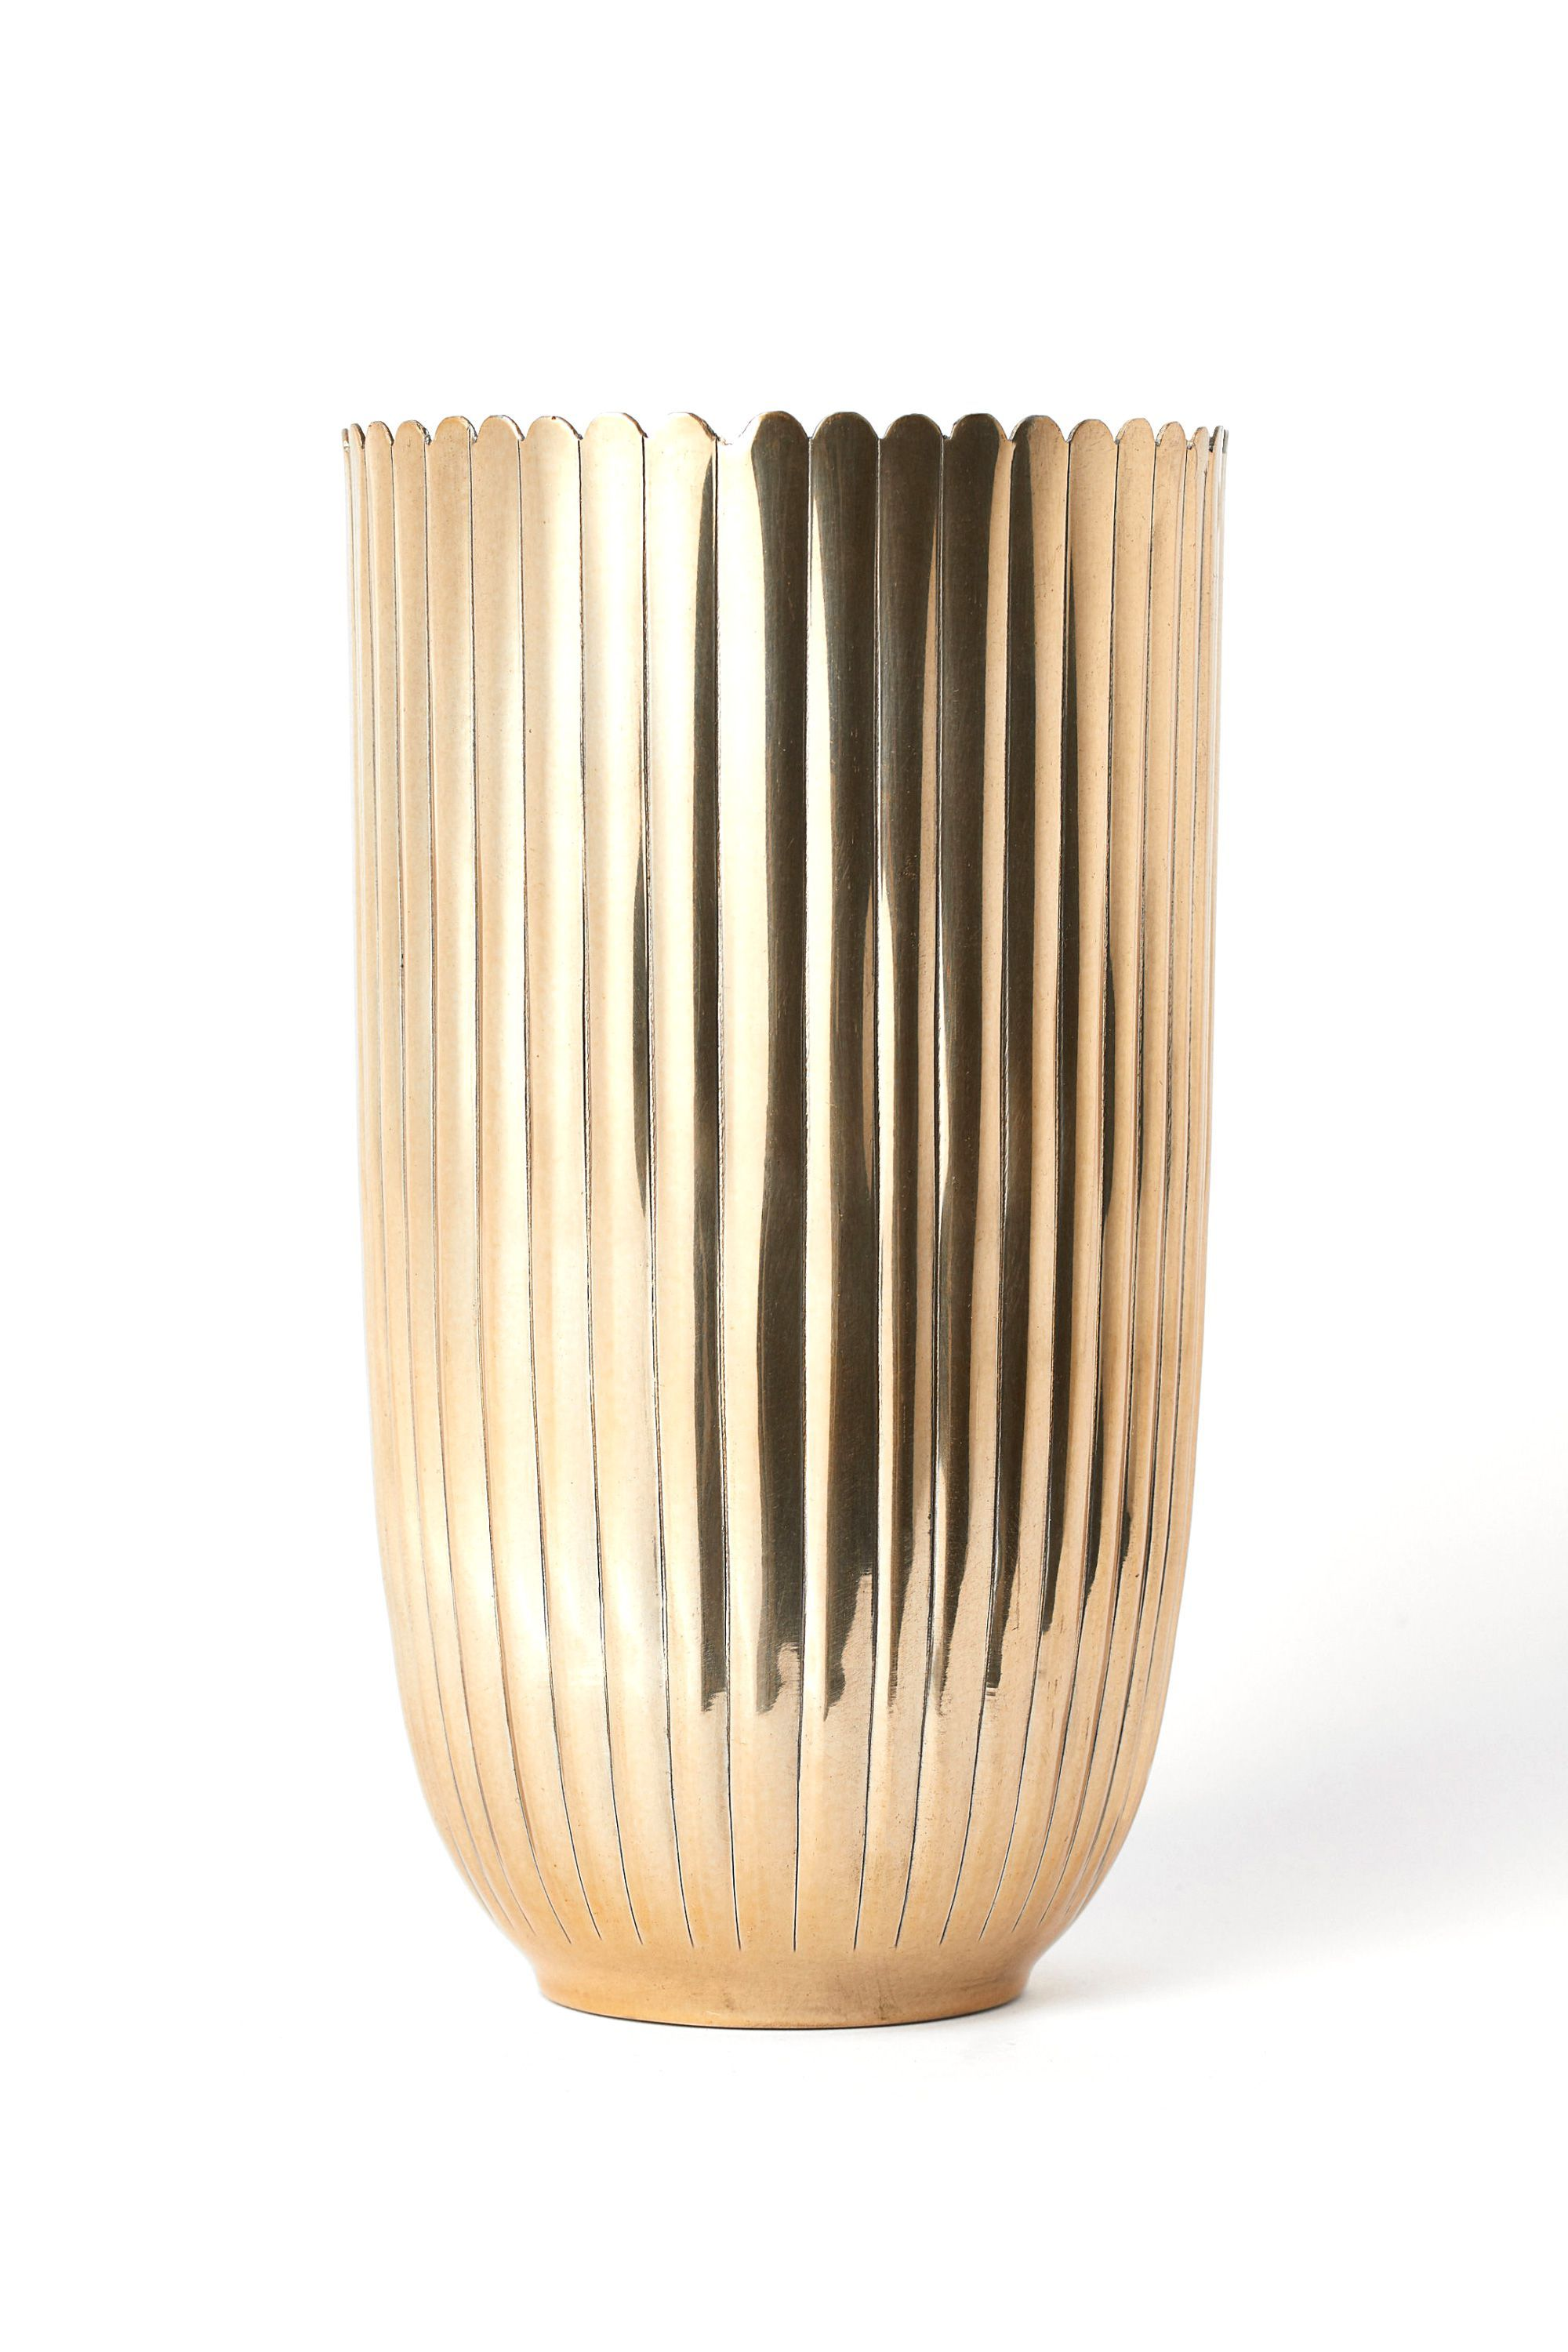 Tall Metal Vase H&M hm.com $24.99 SHOP NOW A bouquet of flowers is a standard Mother's Day gift, but present them in this glam vase instead.